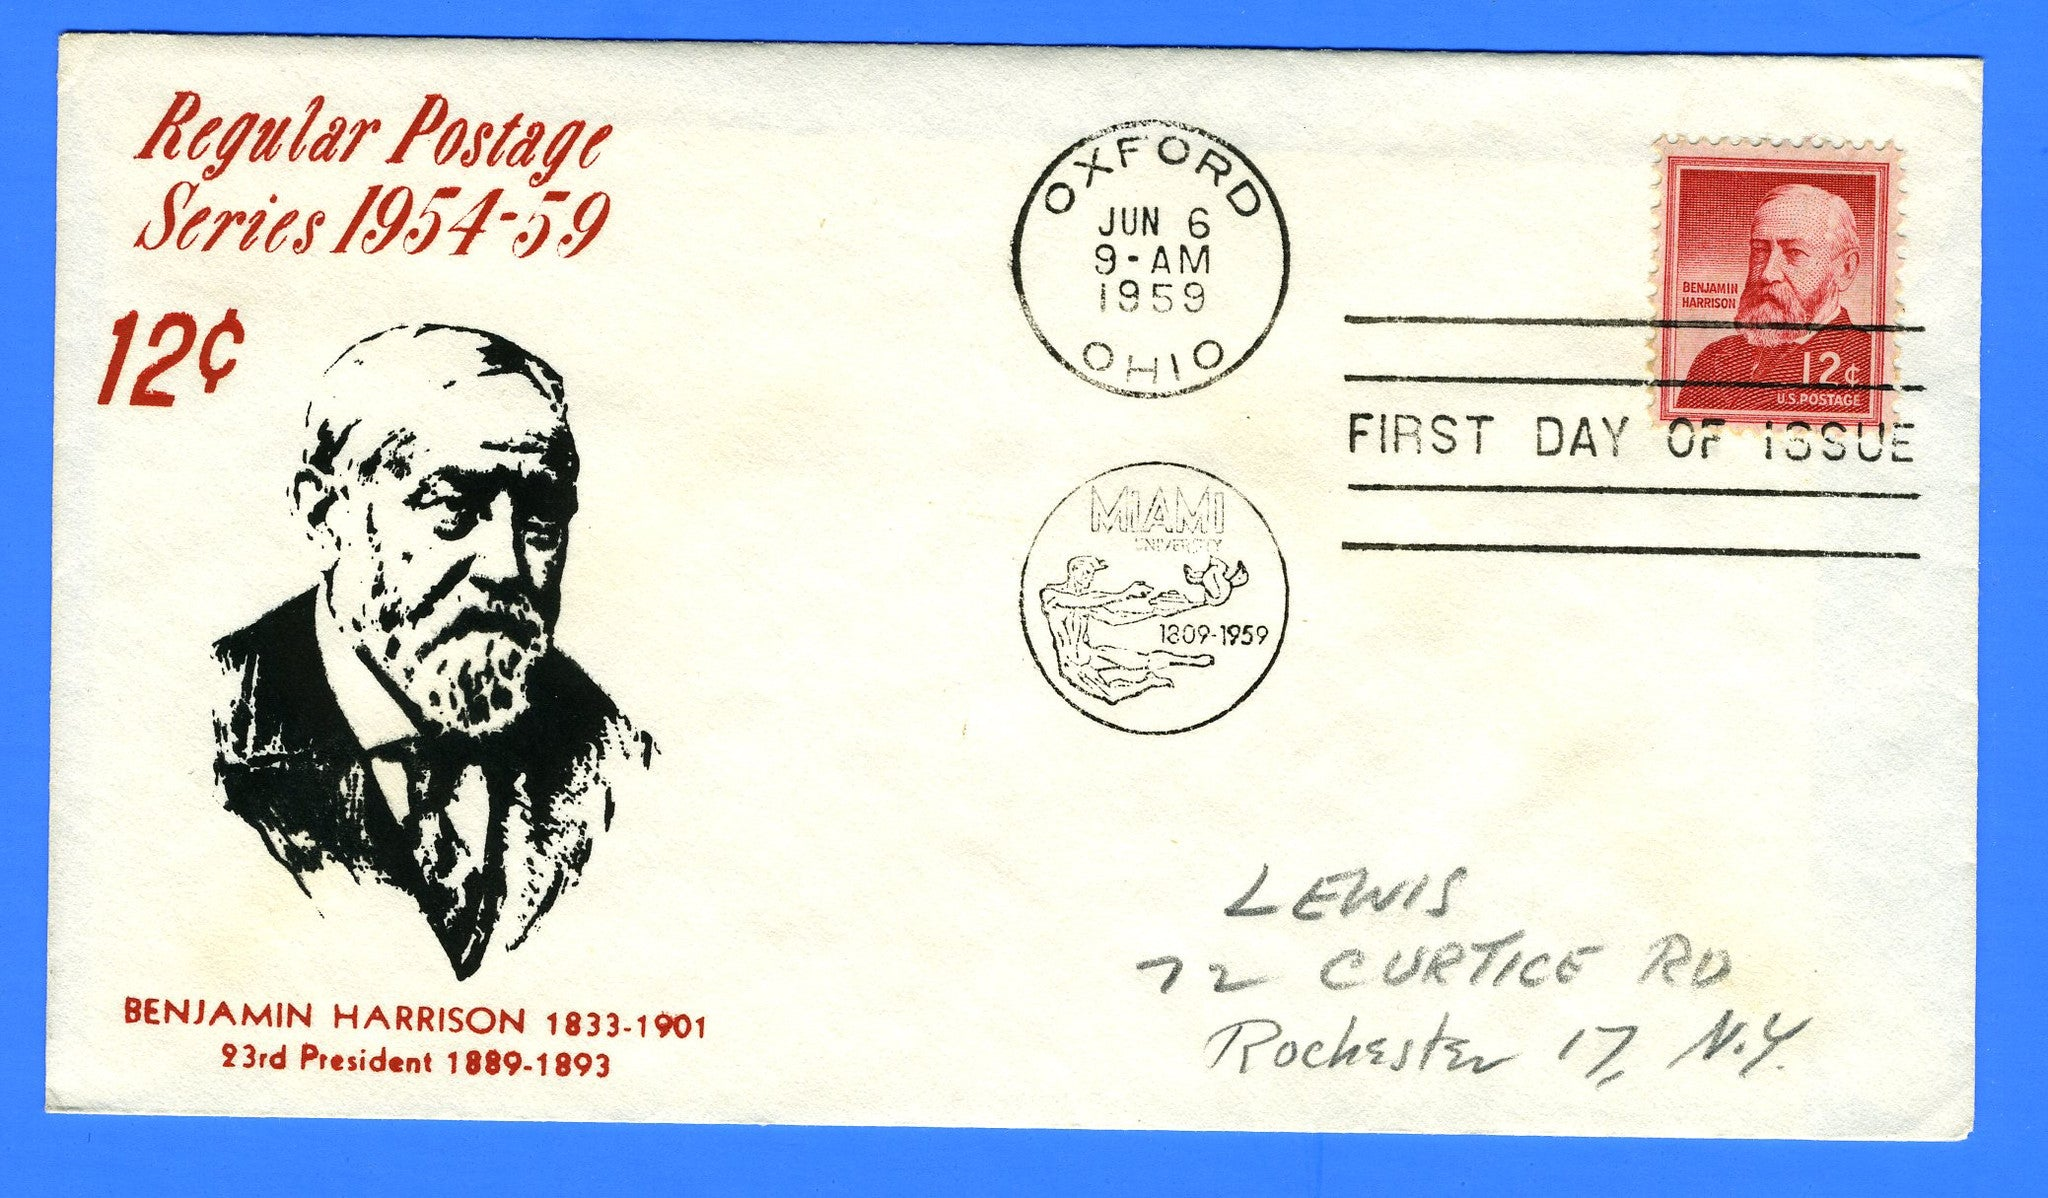 Scott 1045 12c Benjamin Harrison Silk Screen First Day Cover by Eric Lewis - Very Rare - Only Seven Known Copies